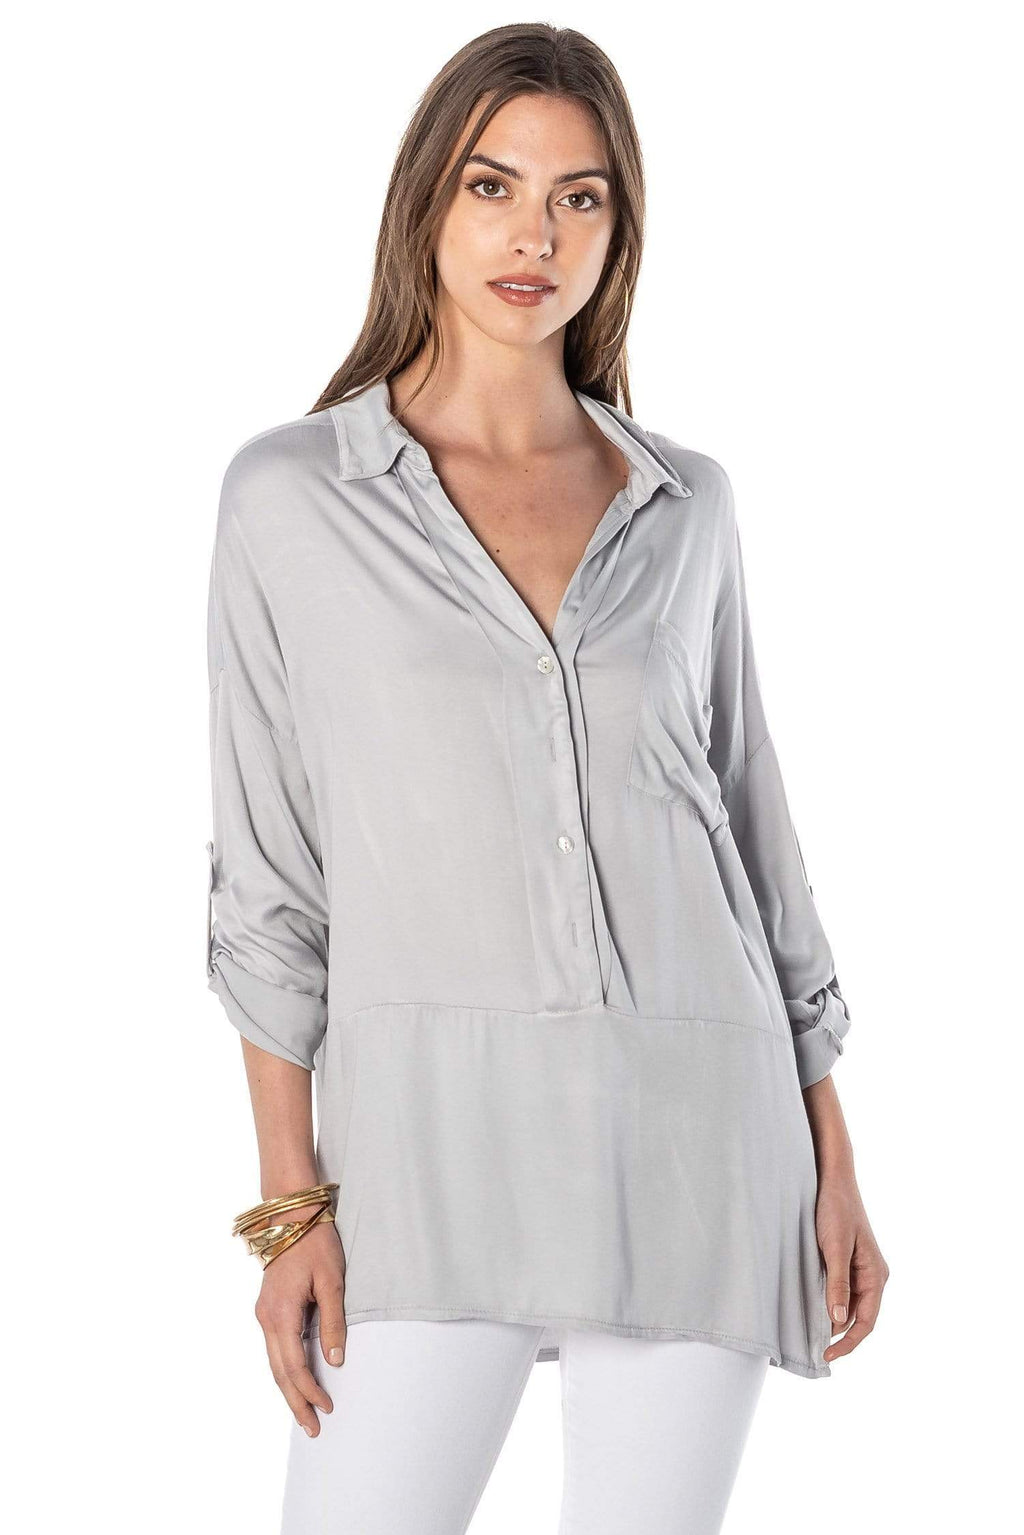 shop-sofia Aaliyah Silver Roll up/down Long Sleeve Top Sofia Collections Italian Silk Linen Satin